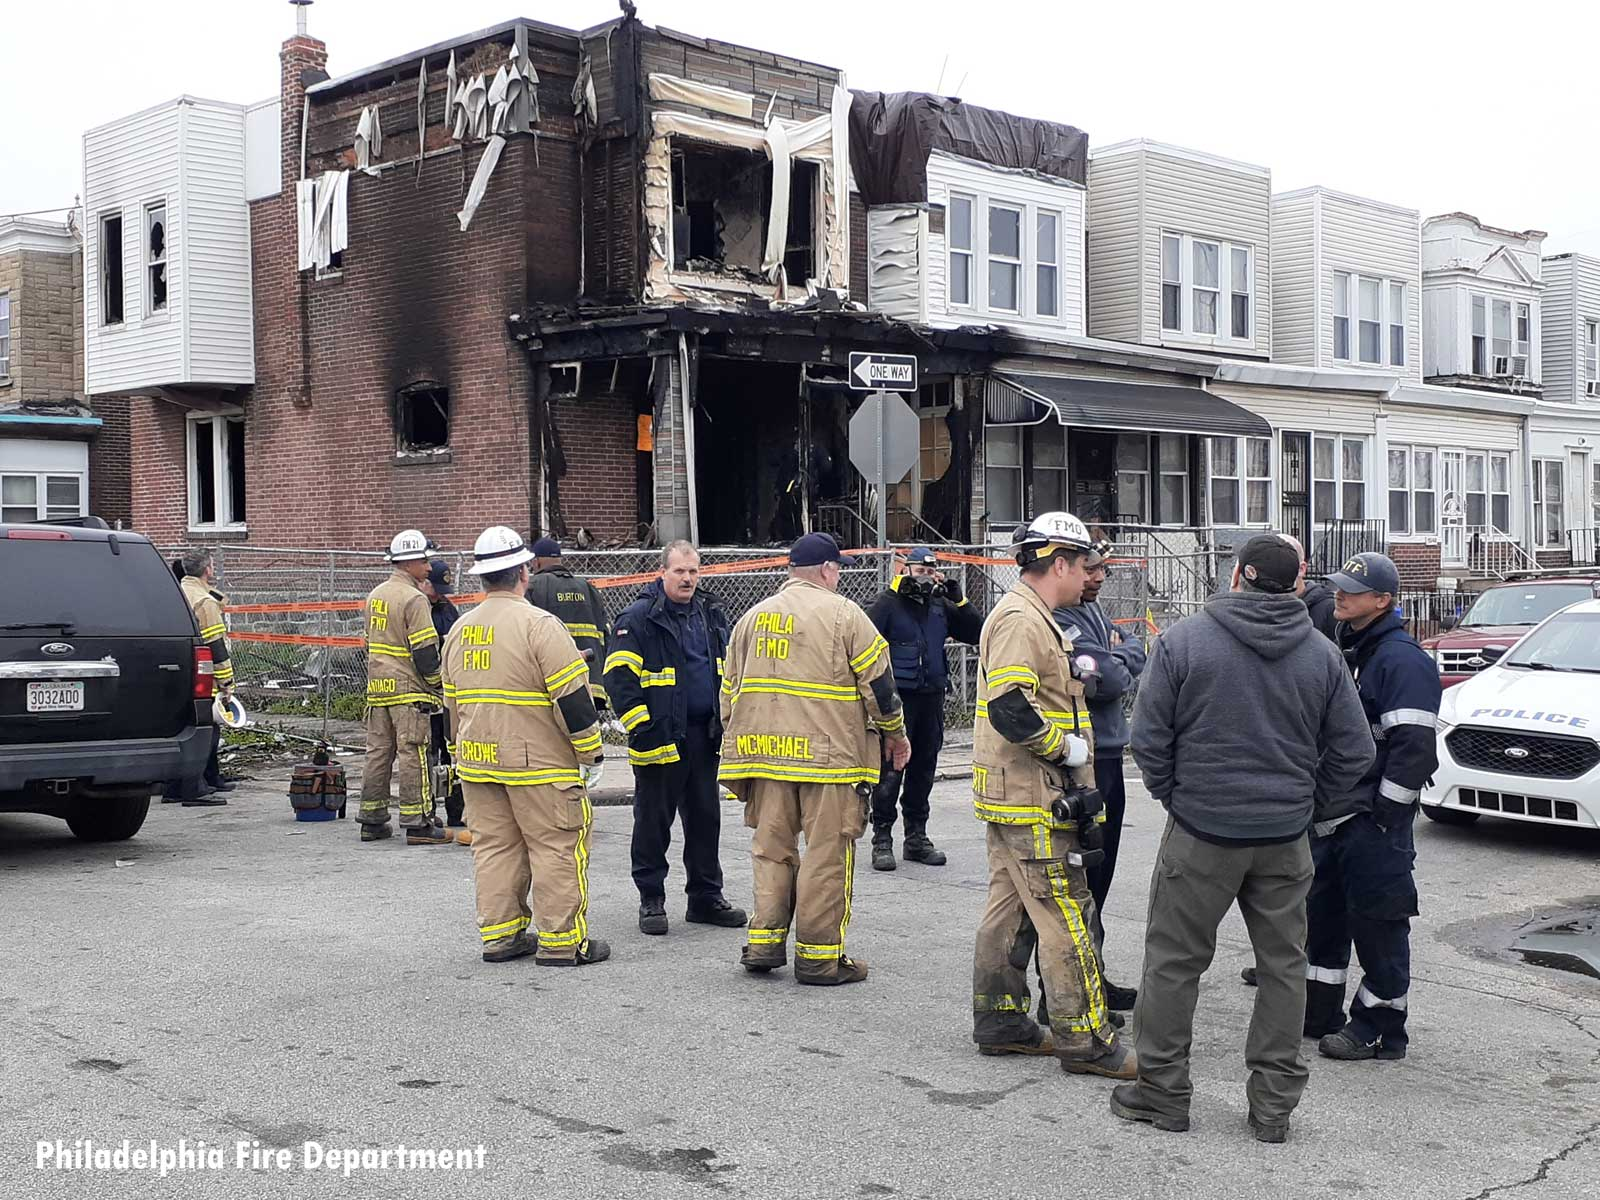 Philadelphia firefighters at the scene of a fatal fire